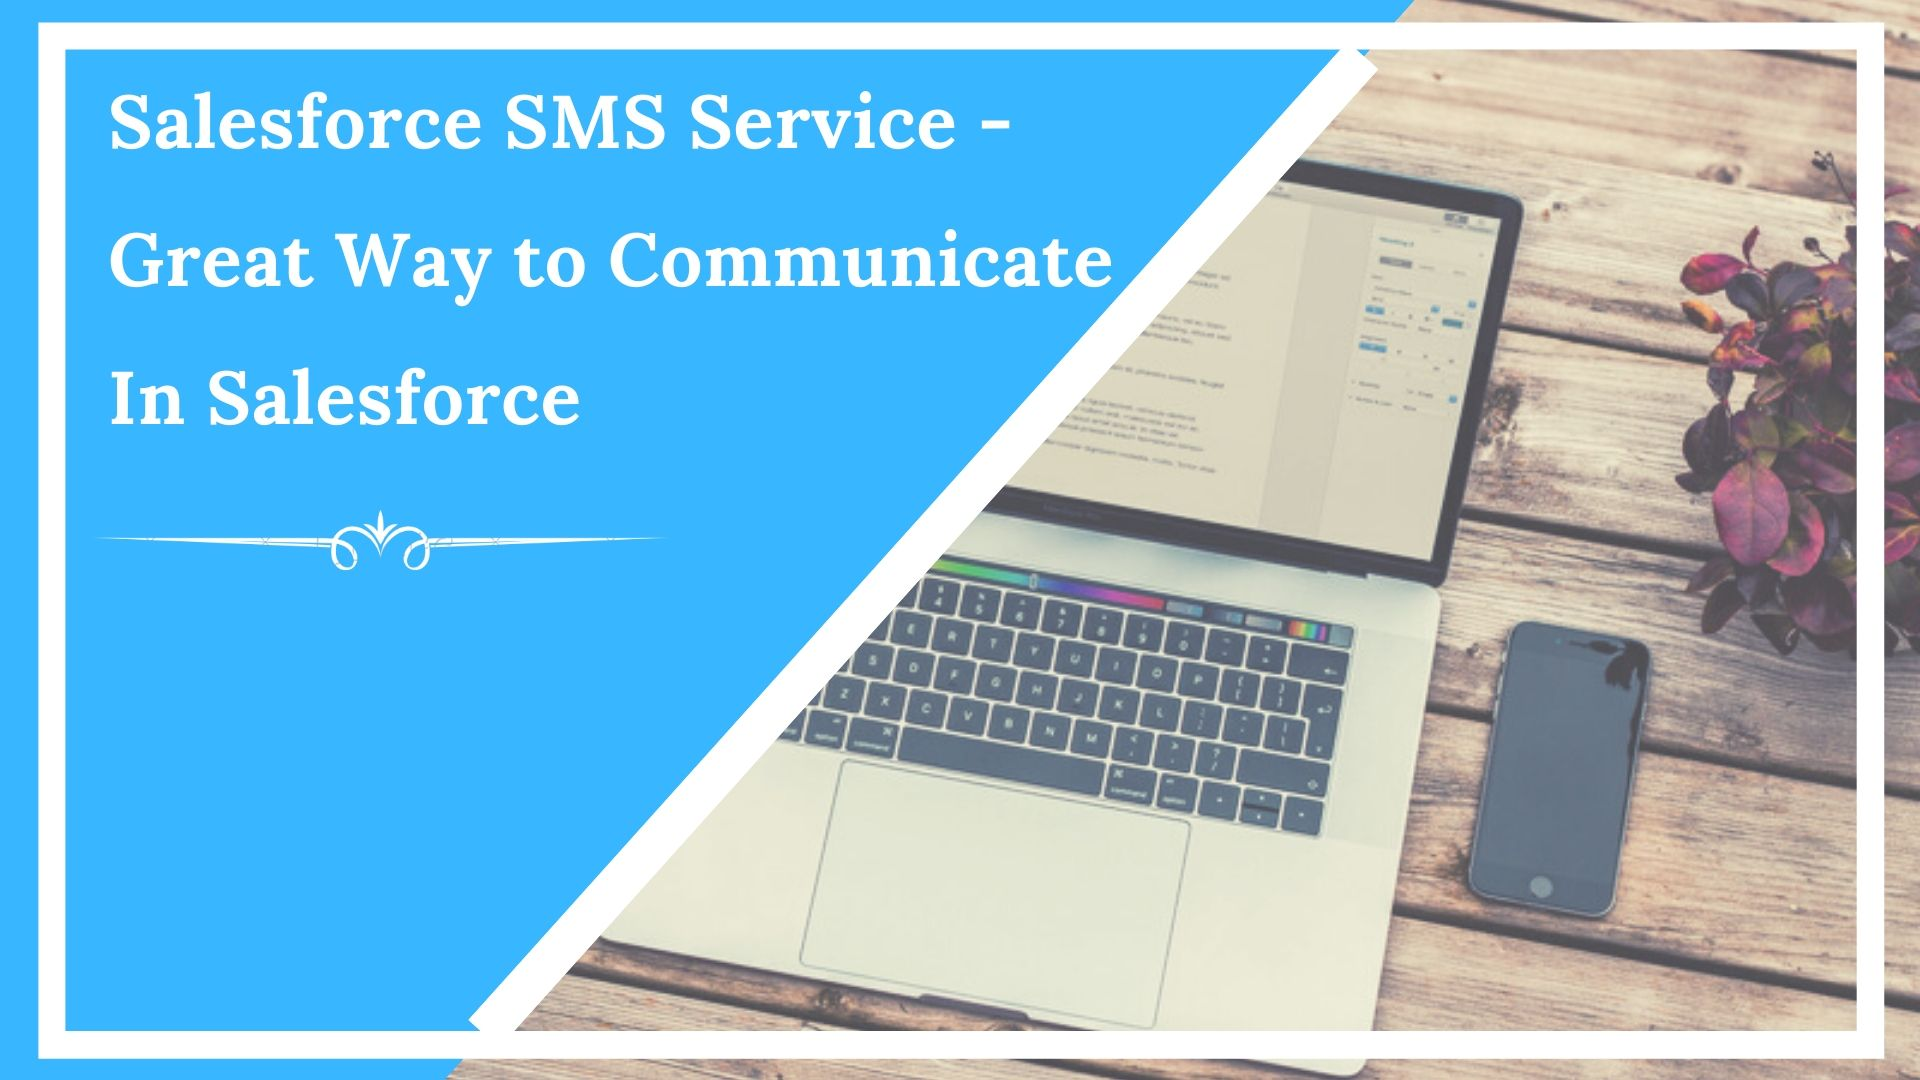 Get the Salesforce chat App today to get faster growth in business – Salesforce Services & SMS Apps